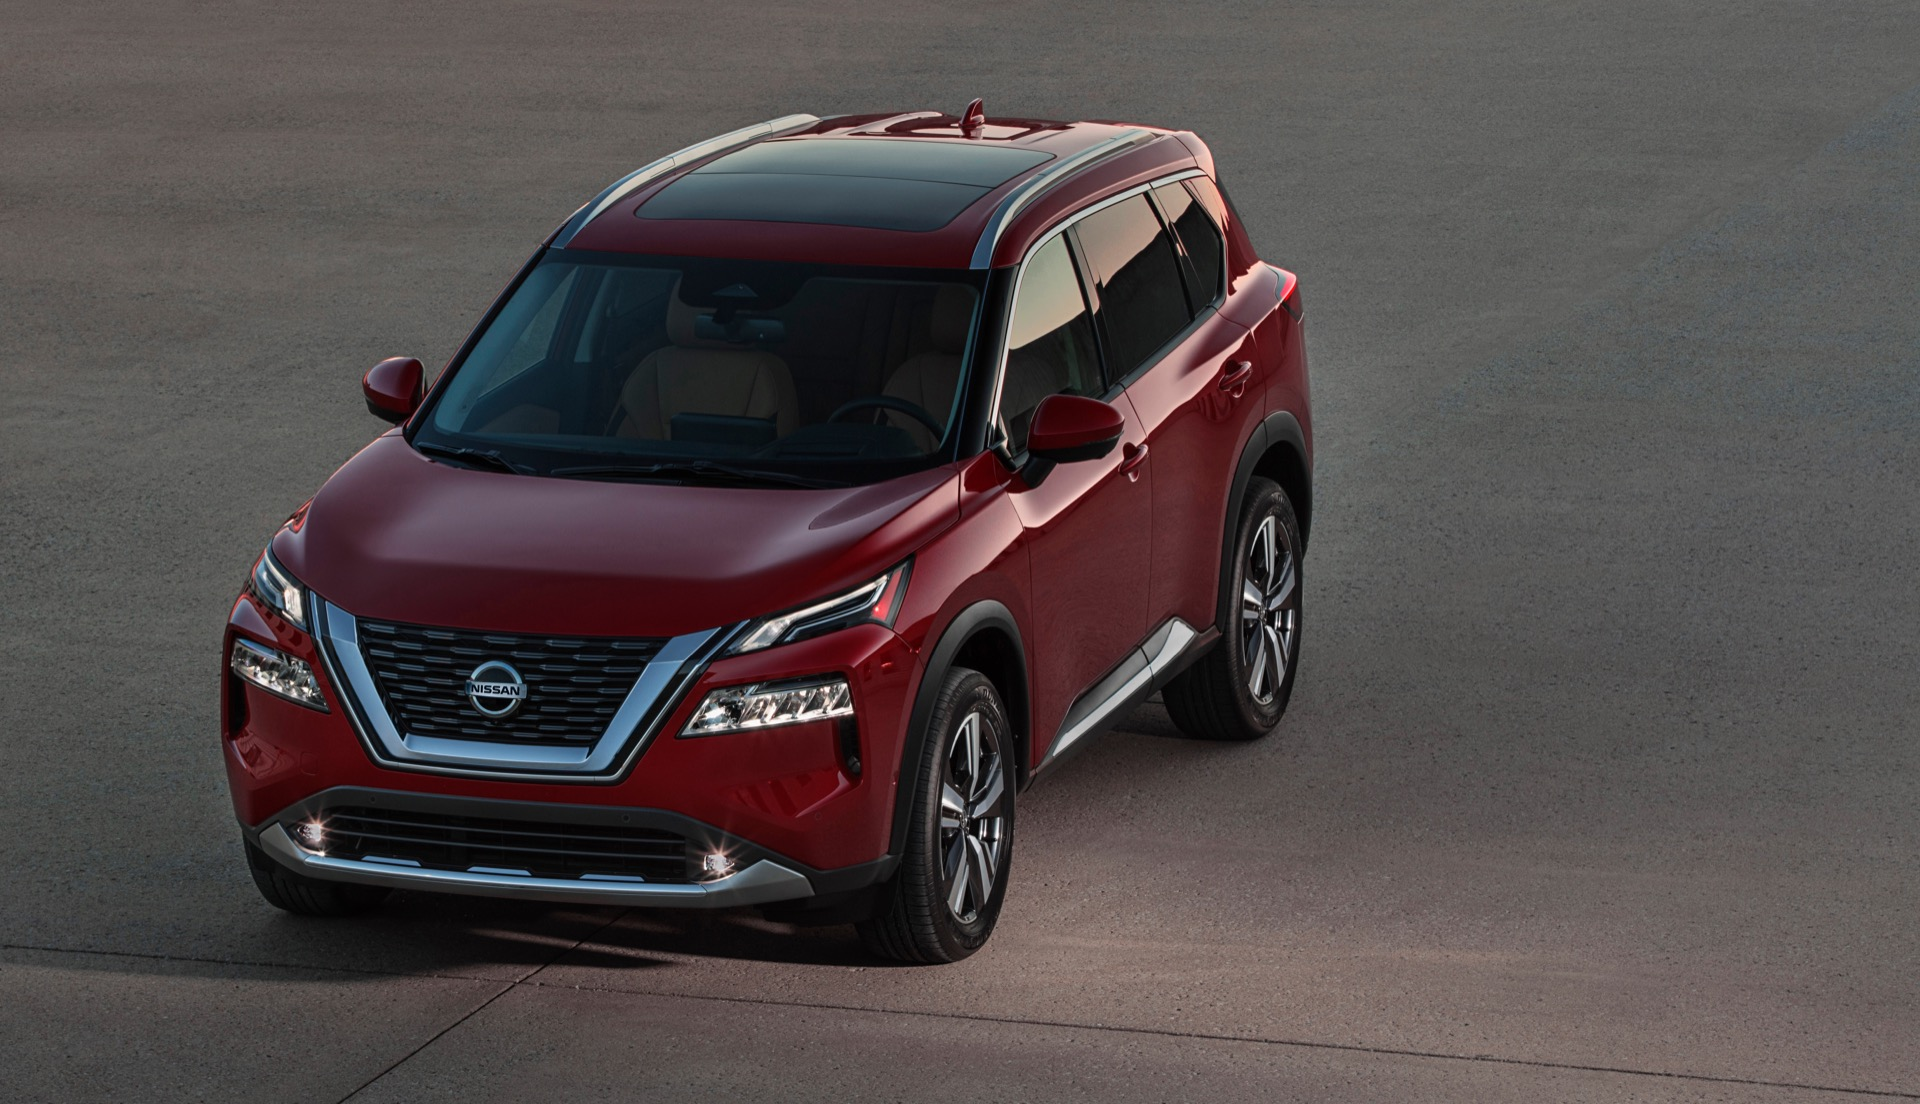 2021 Nissan Rogue Price, Design and Review